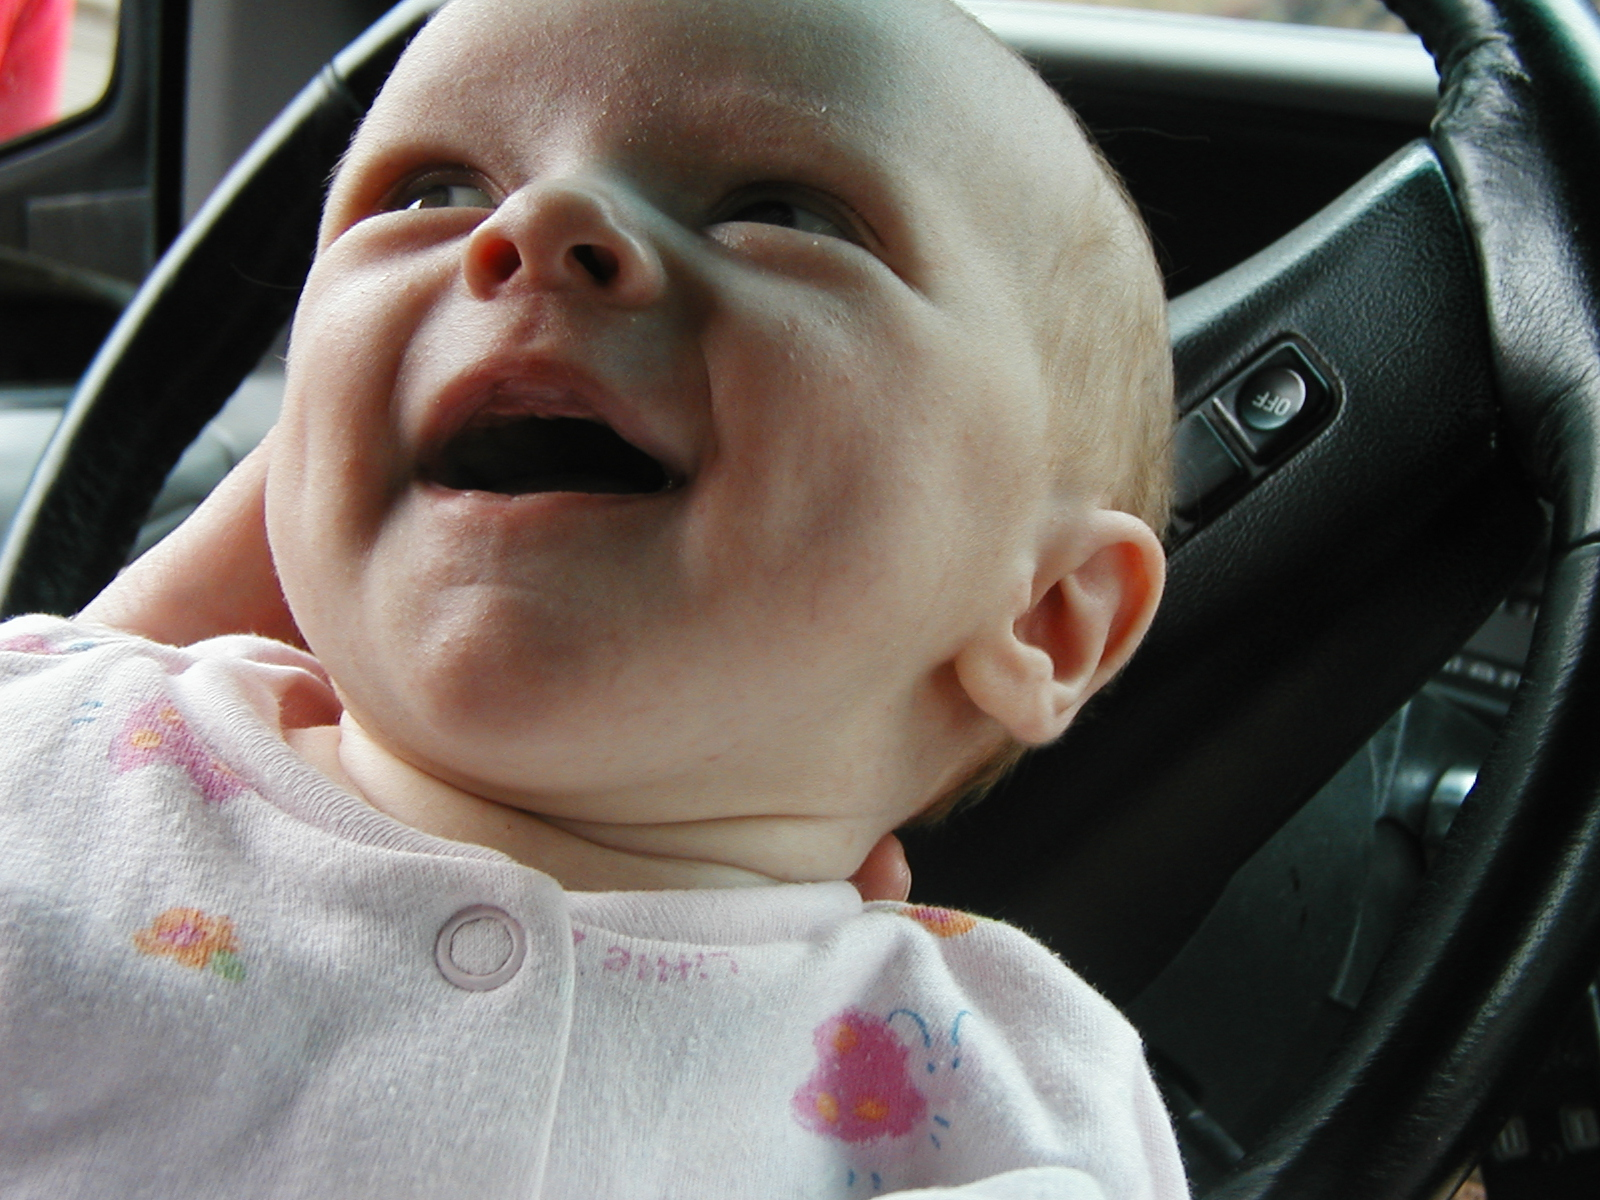 This was Audrey's first-ever legit smile. SEE WHAT A GOOD MOM I WAS...NURSING IN THE DRIVER's SEAT. RELAX - I'm sure the car was in park.